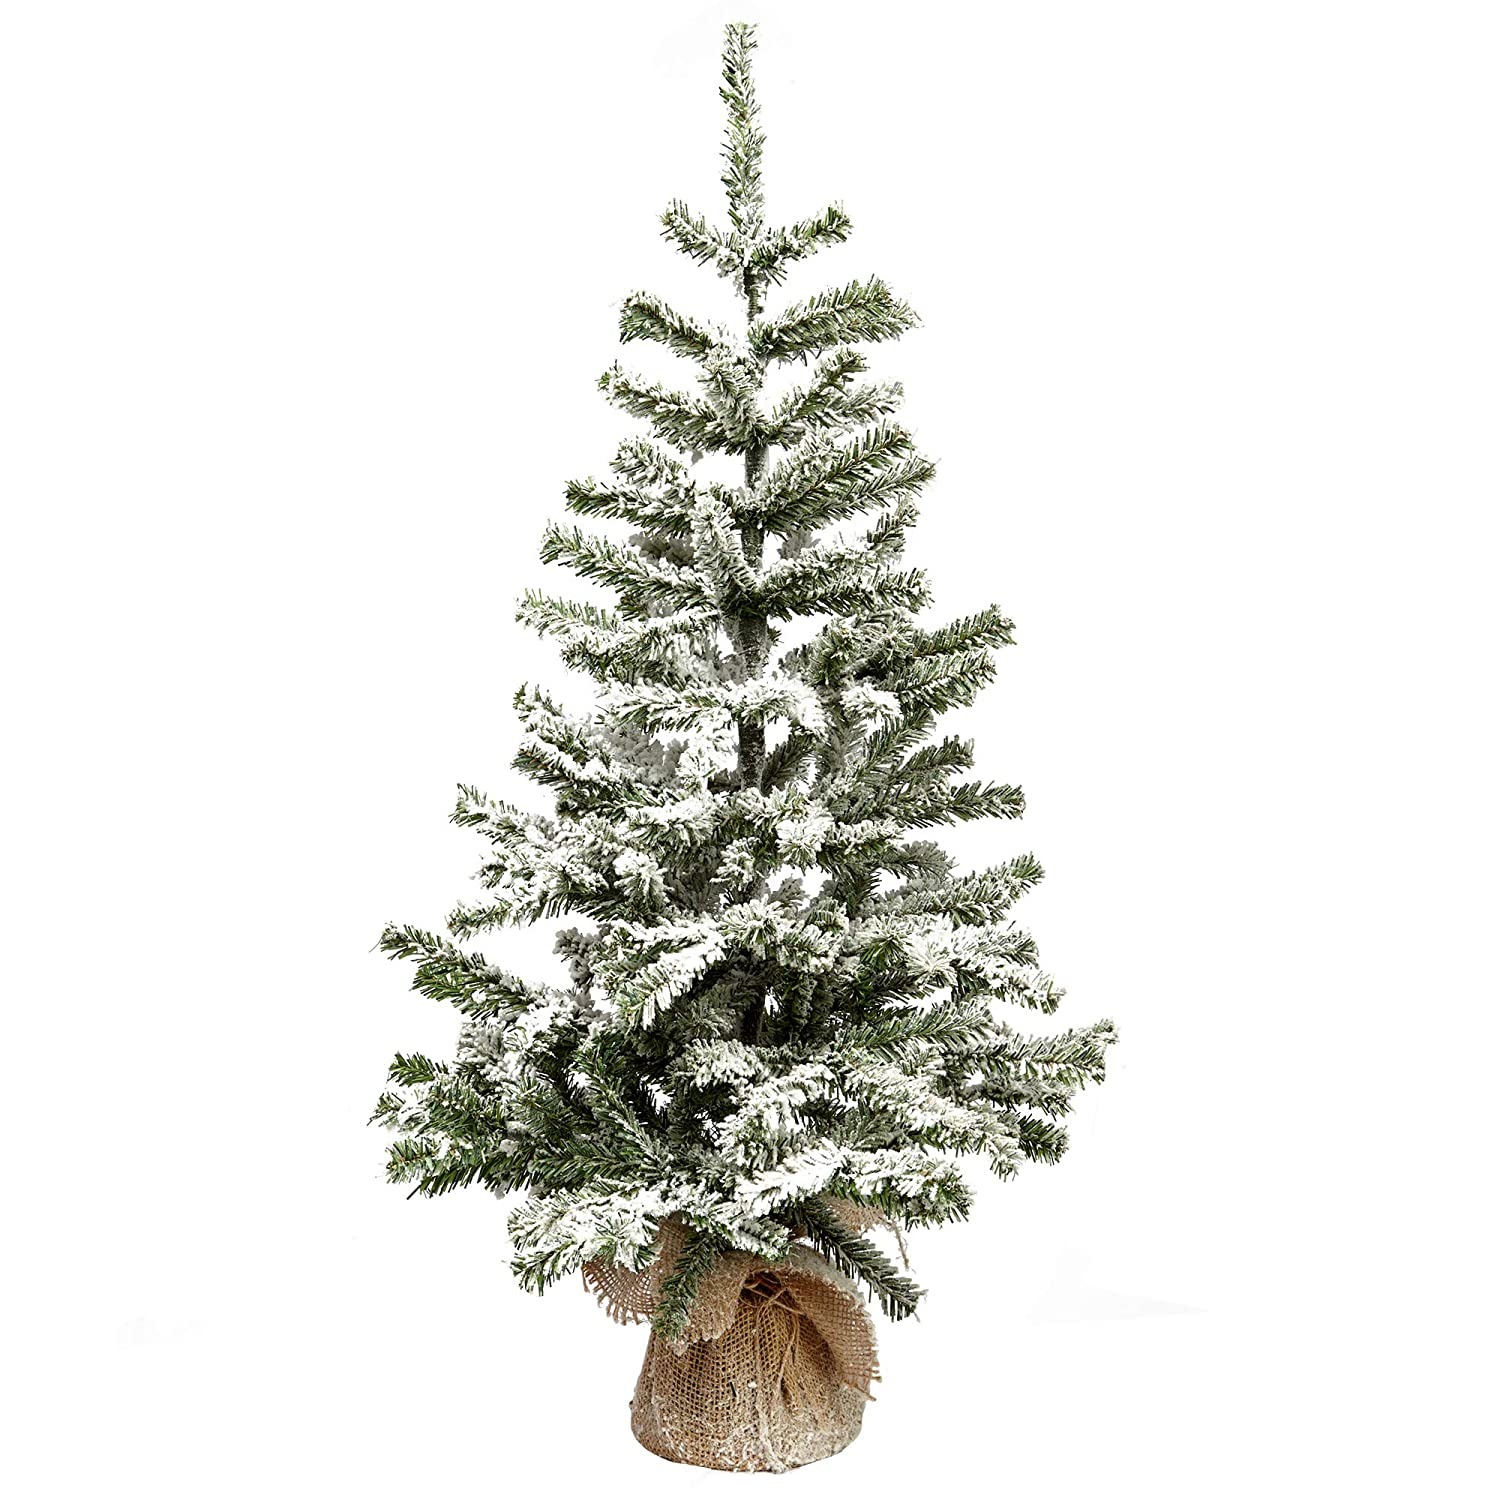 VGIA 26 Inch Small Artificial Christmas Tree Snow Tree with Wood Stand Flocked Snow VGA